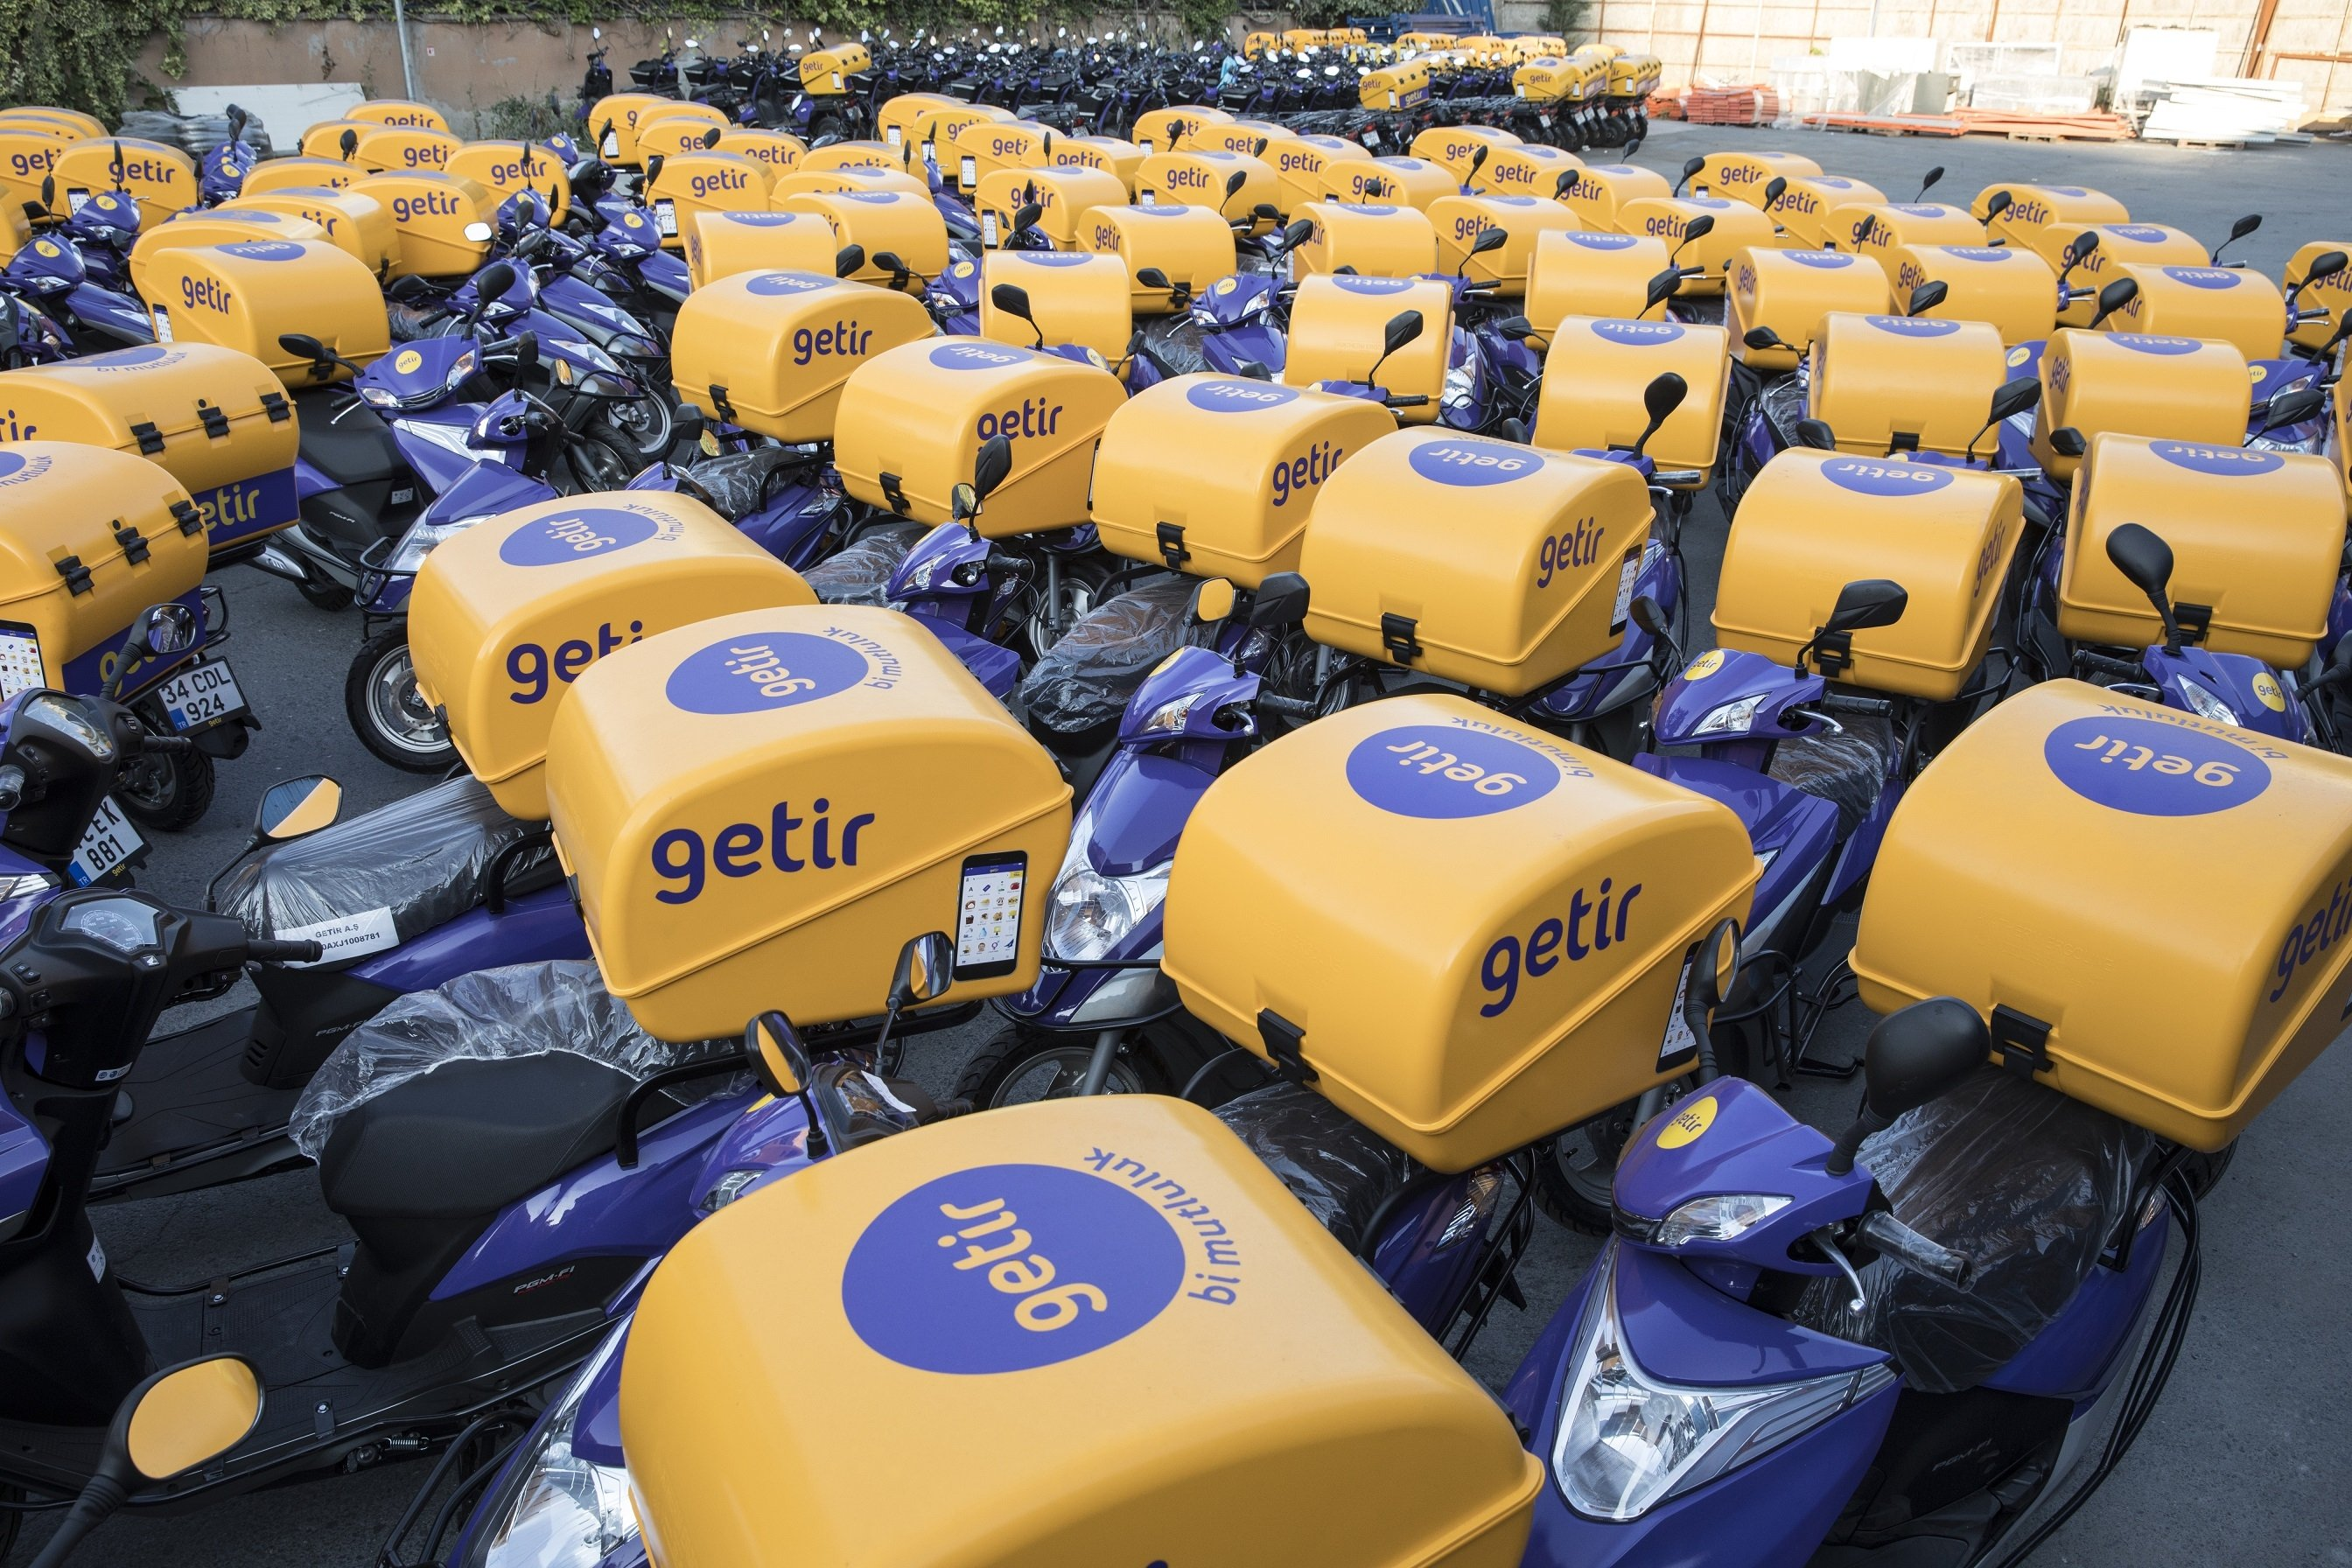 Brand new Getir scooters ready to be put into service in Istanbul, Turkey. (Courtesy of Getir)